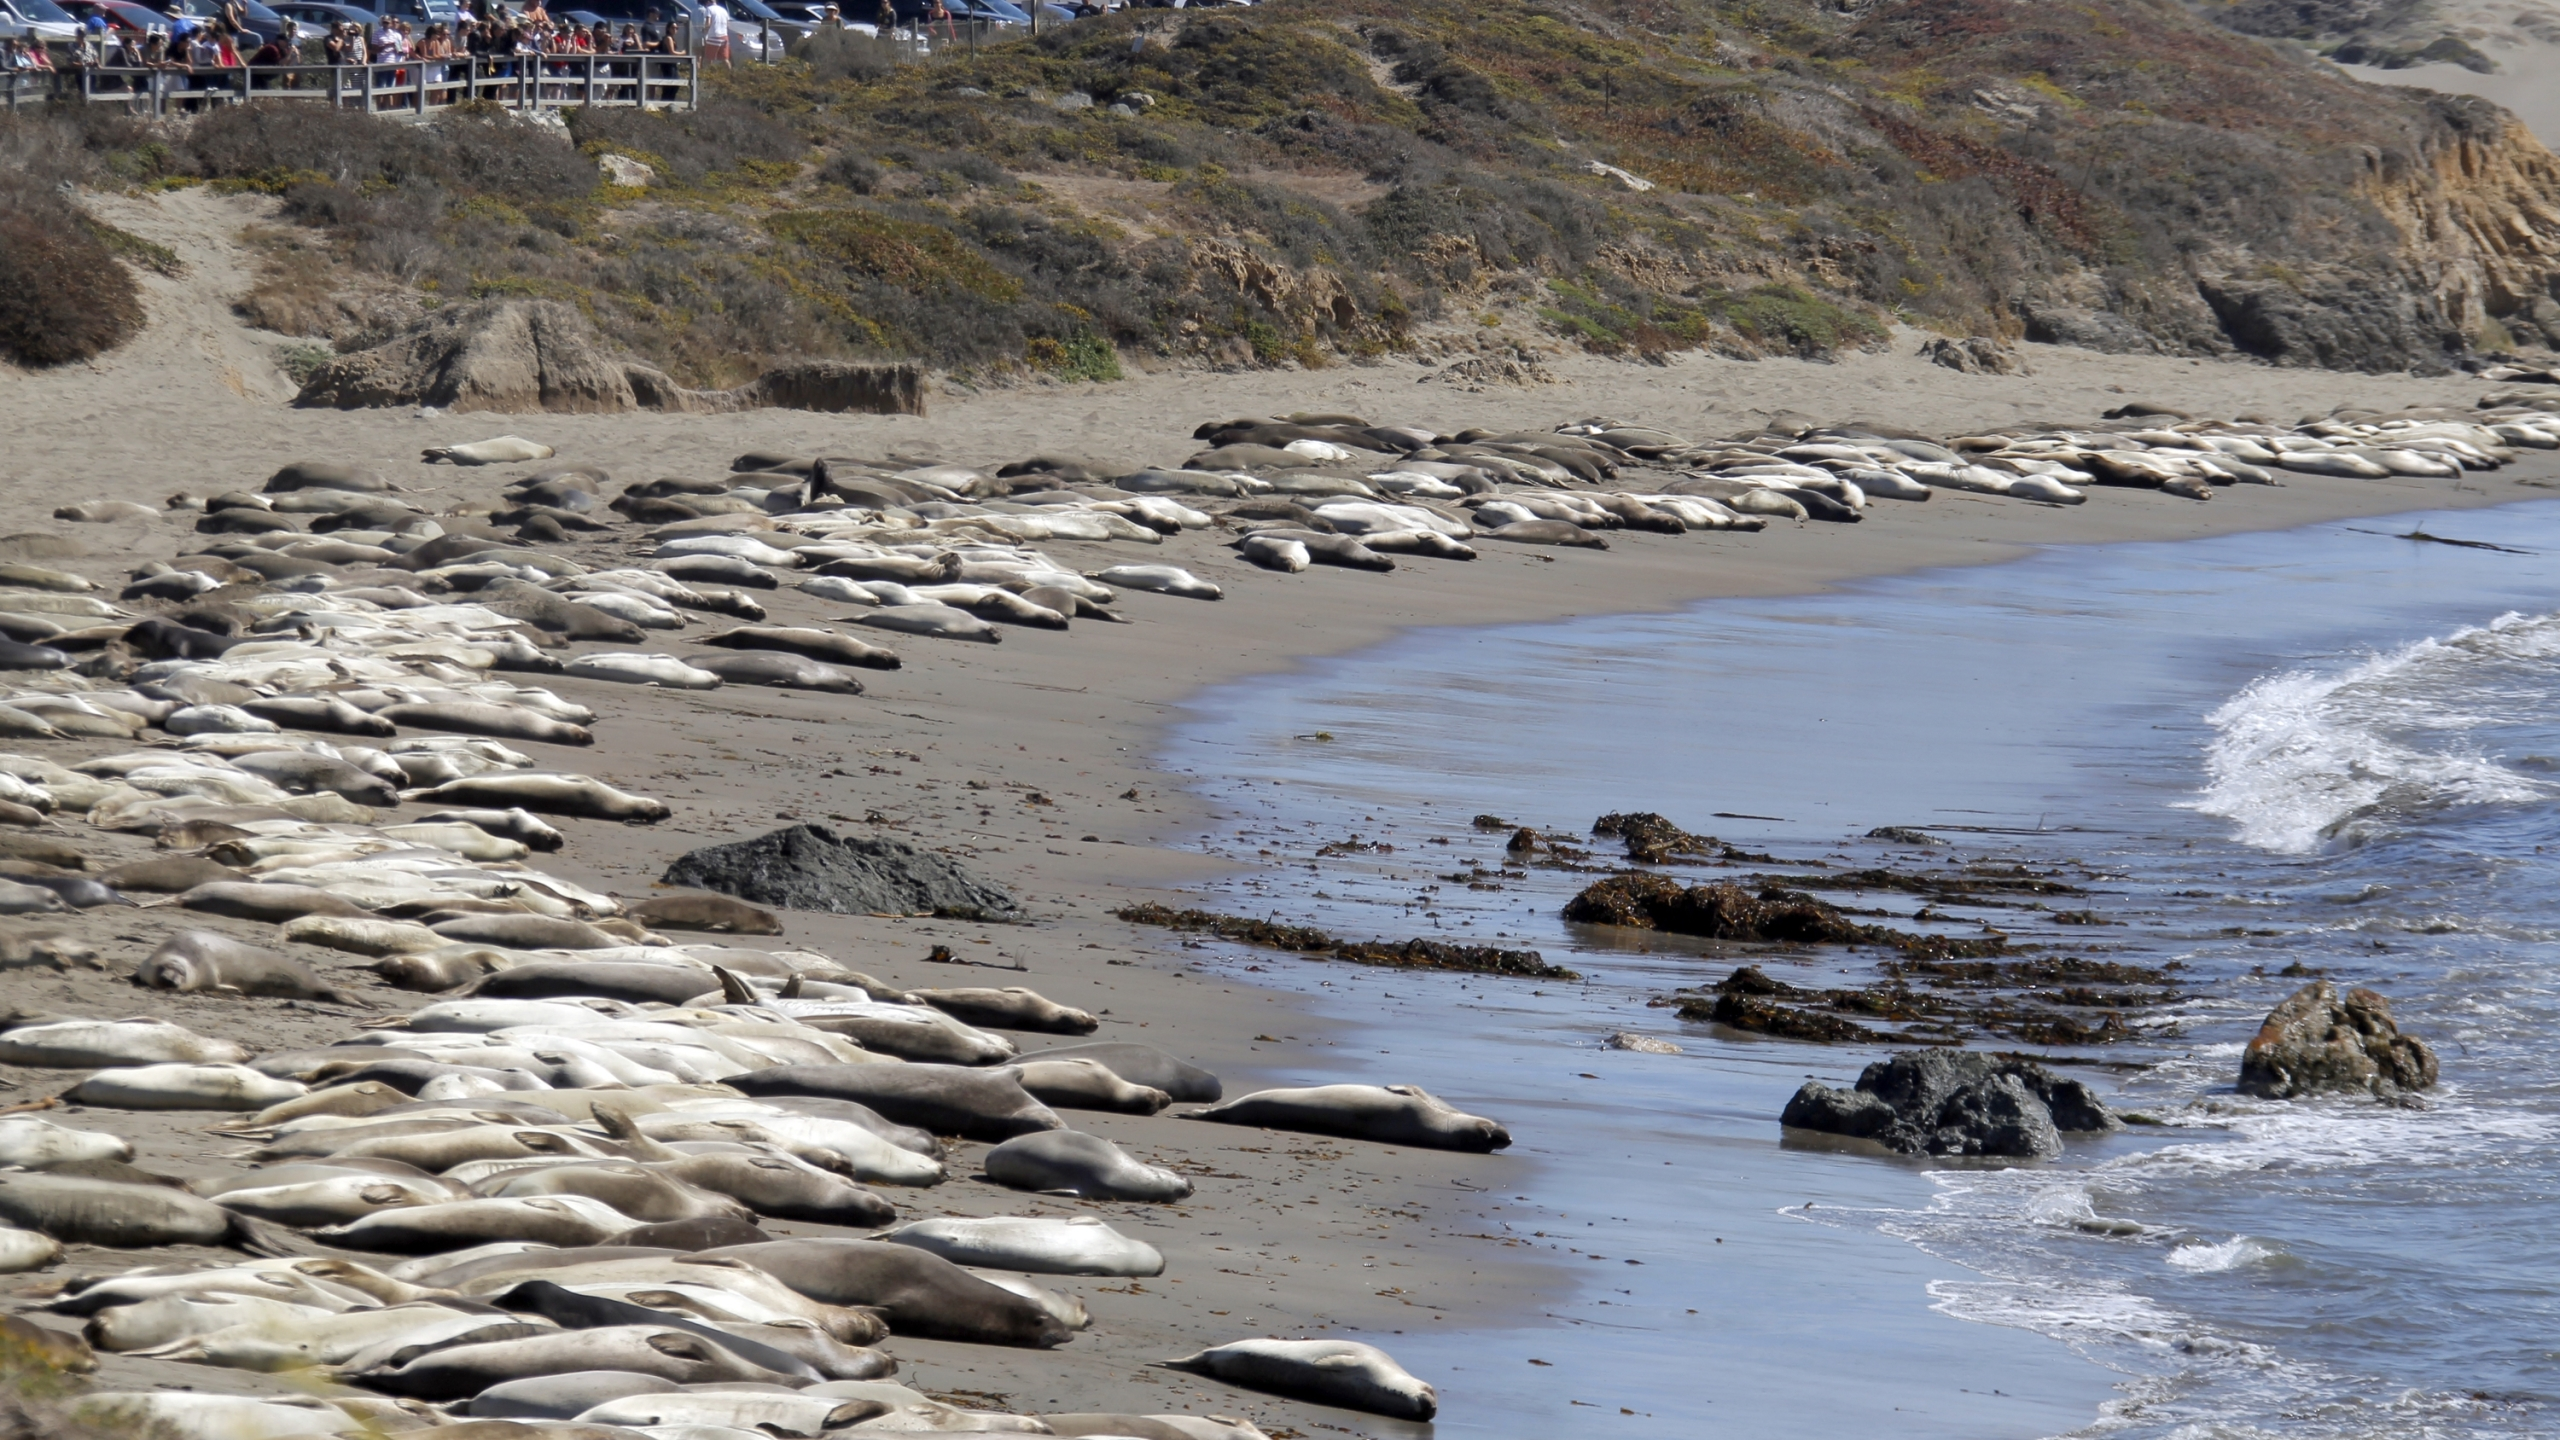 In this file photo taken Oct. 6, 2013, tourists watch elephant seals basking in the sun on the Piedras Blancas beach near San Simeon, Calif. The Piedras Blancas Marine Reserve rookery, on Highway 1, seven-miles north of San Simeon on the California Central Coast, is home to thousands of elephant seals. (Nick Ut/Associated Press)